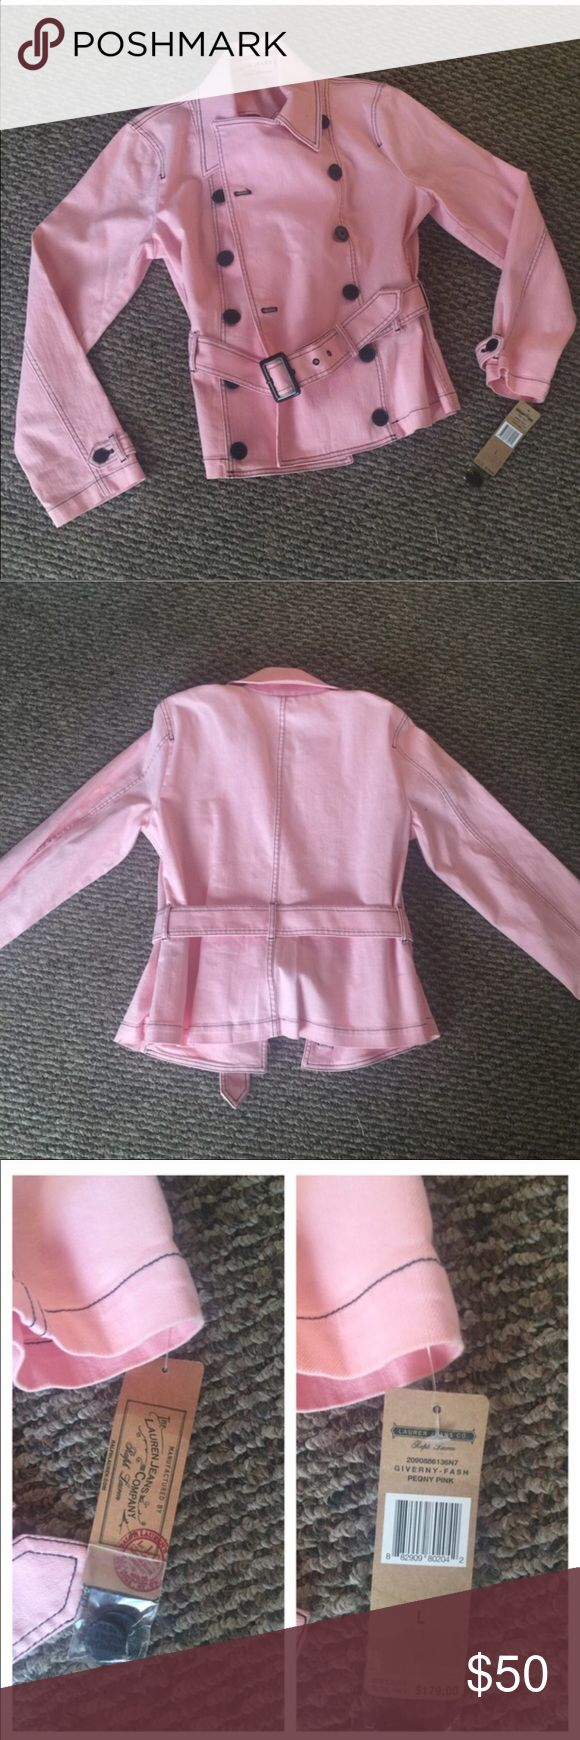 Jean Jacket nwt Beautiful and stunning pink Ralph Lauran jacket jeans company. The pictures tell its story of how absolutely amazing it is. Size large. NWT this is really a beautiful and amazing jacket!!!! Super soft with a lil stretch. Lauren Ralph Lauren Jackets & Coats